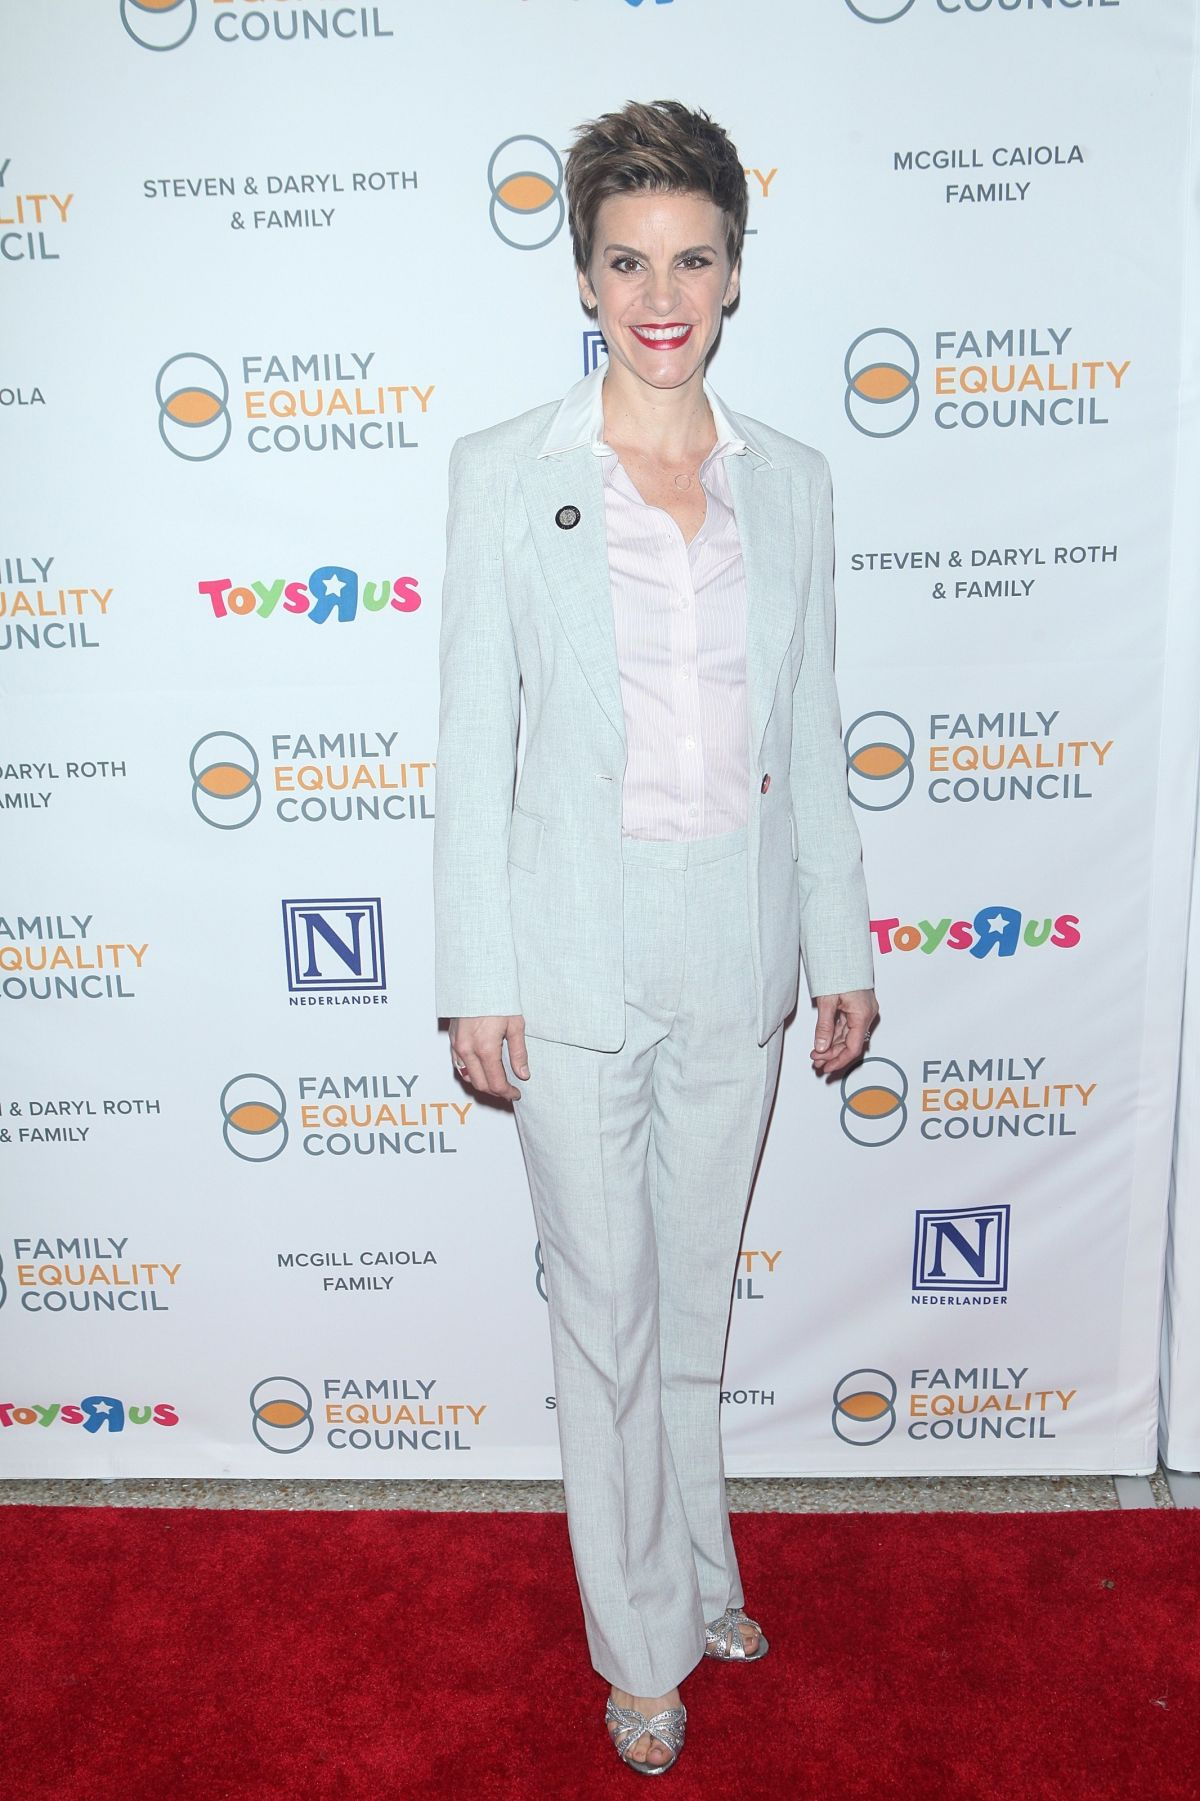 JENN COLELLA at Family Equality Council's Night 2017 in New York 05/08/2017